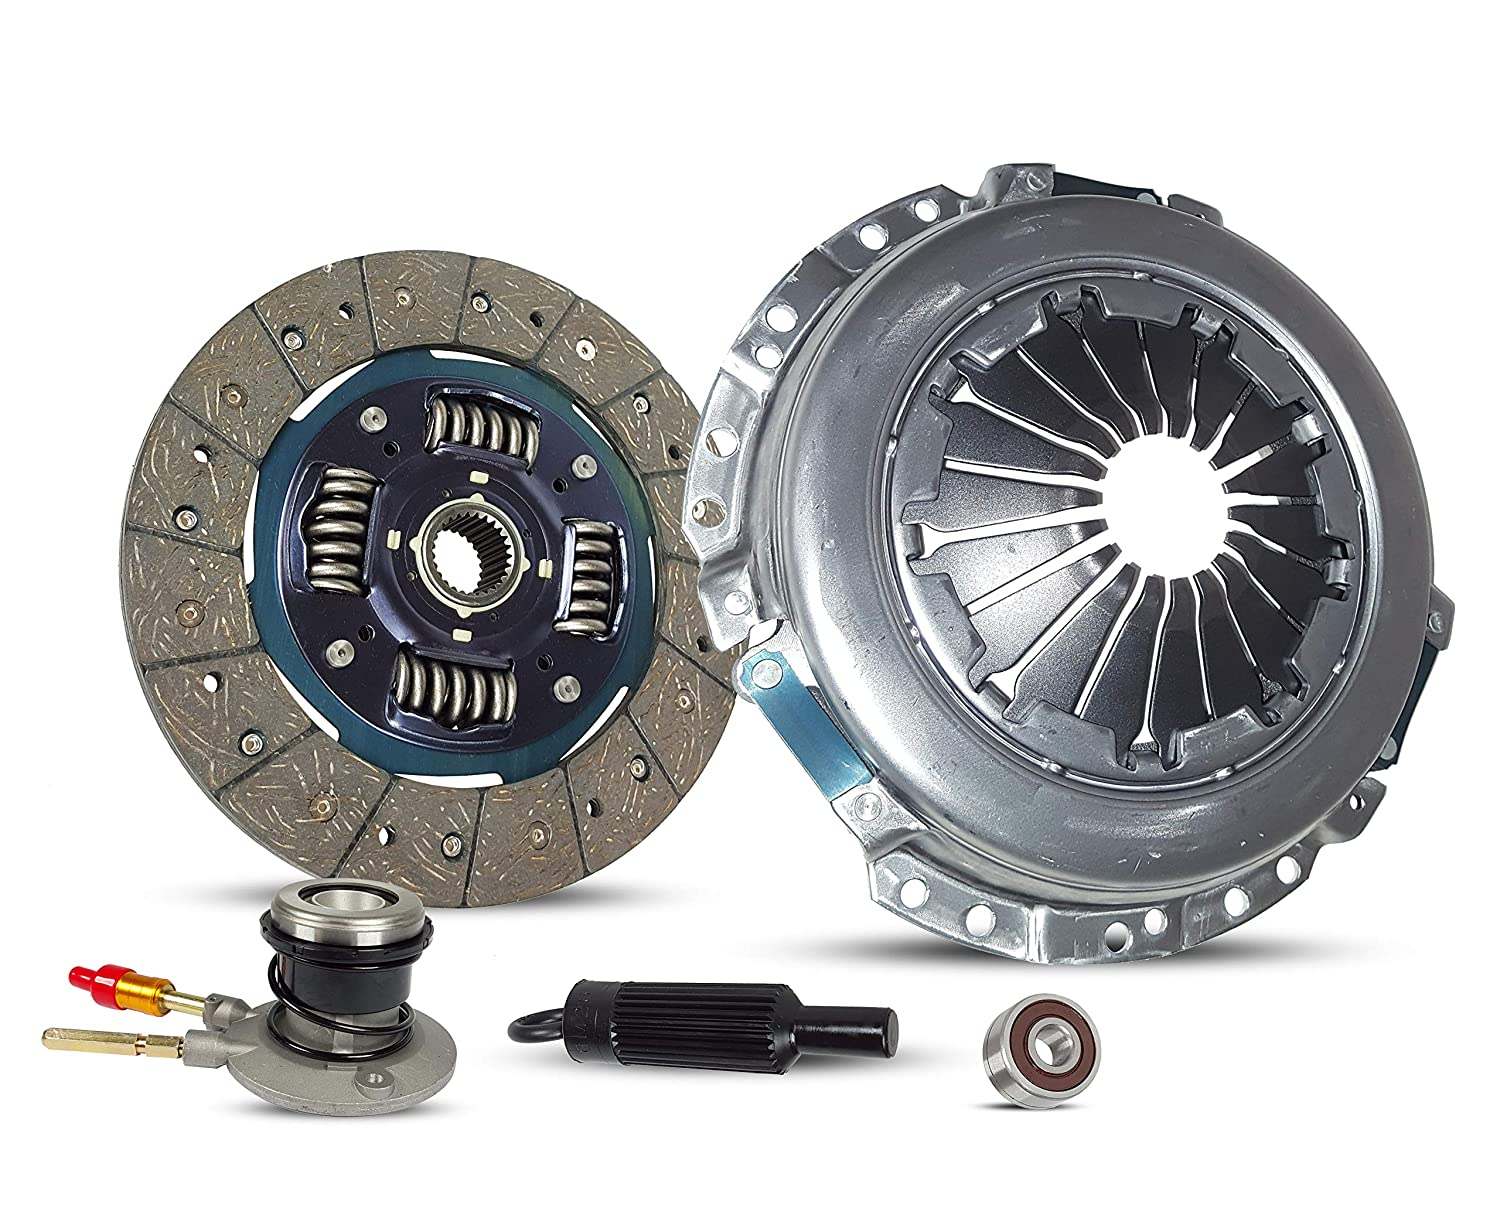 Clutch With Slave Kit Works With Gmc Canyon Chevrolet Colorado Canyon Isuzu I-280 I-290 Z71 Z85 SL SLE SLT WT Extended Fleet 2004-2012 2.8L 2770CC 169Cu. In. l4 GAS DOHC Naturally Aspirated Southeast Clutch